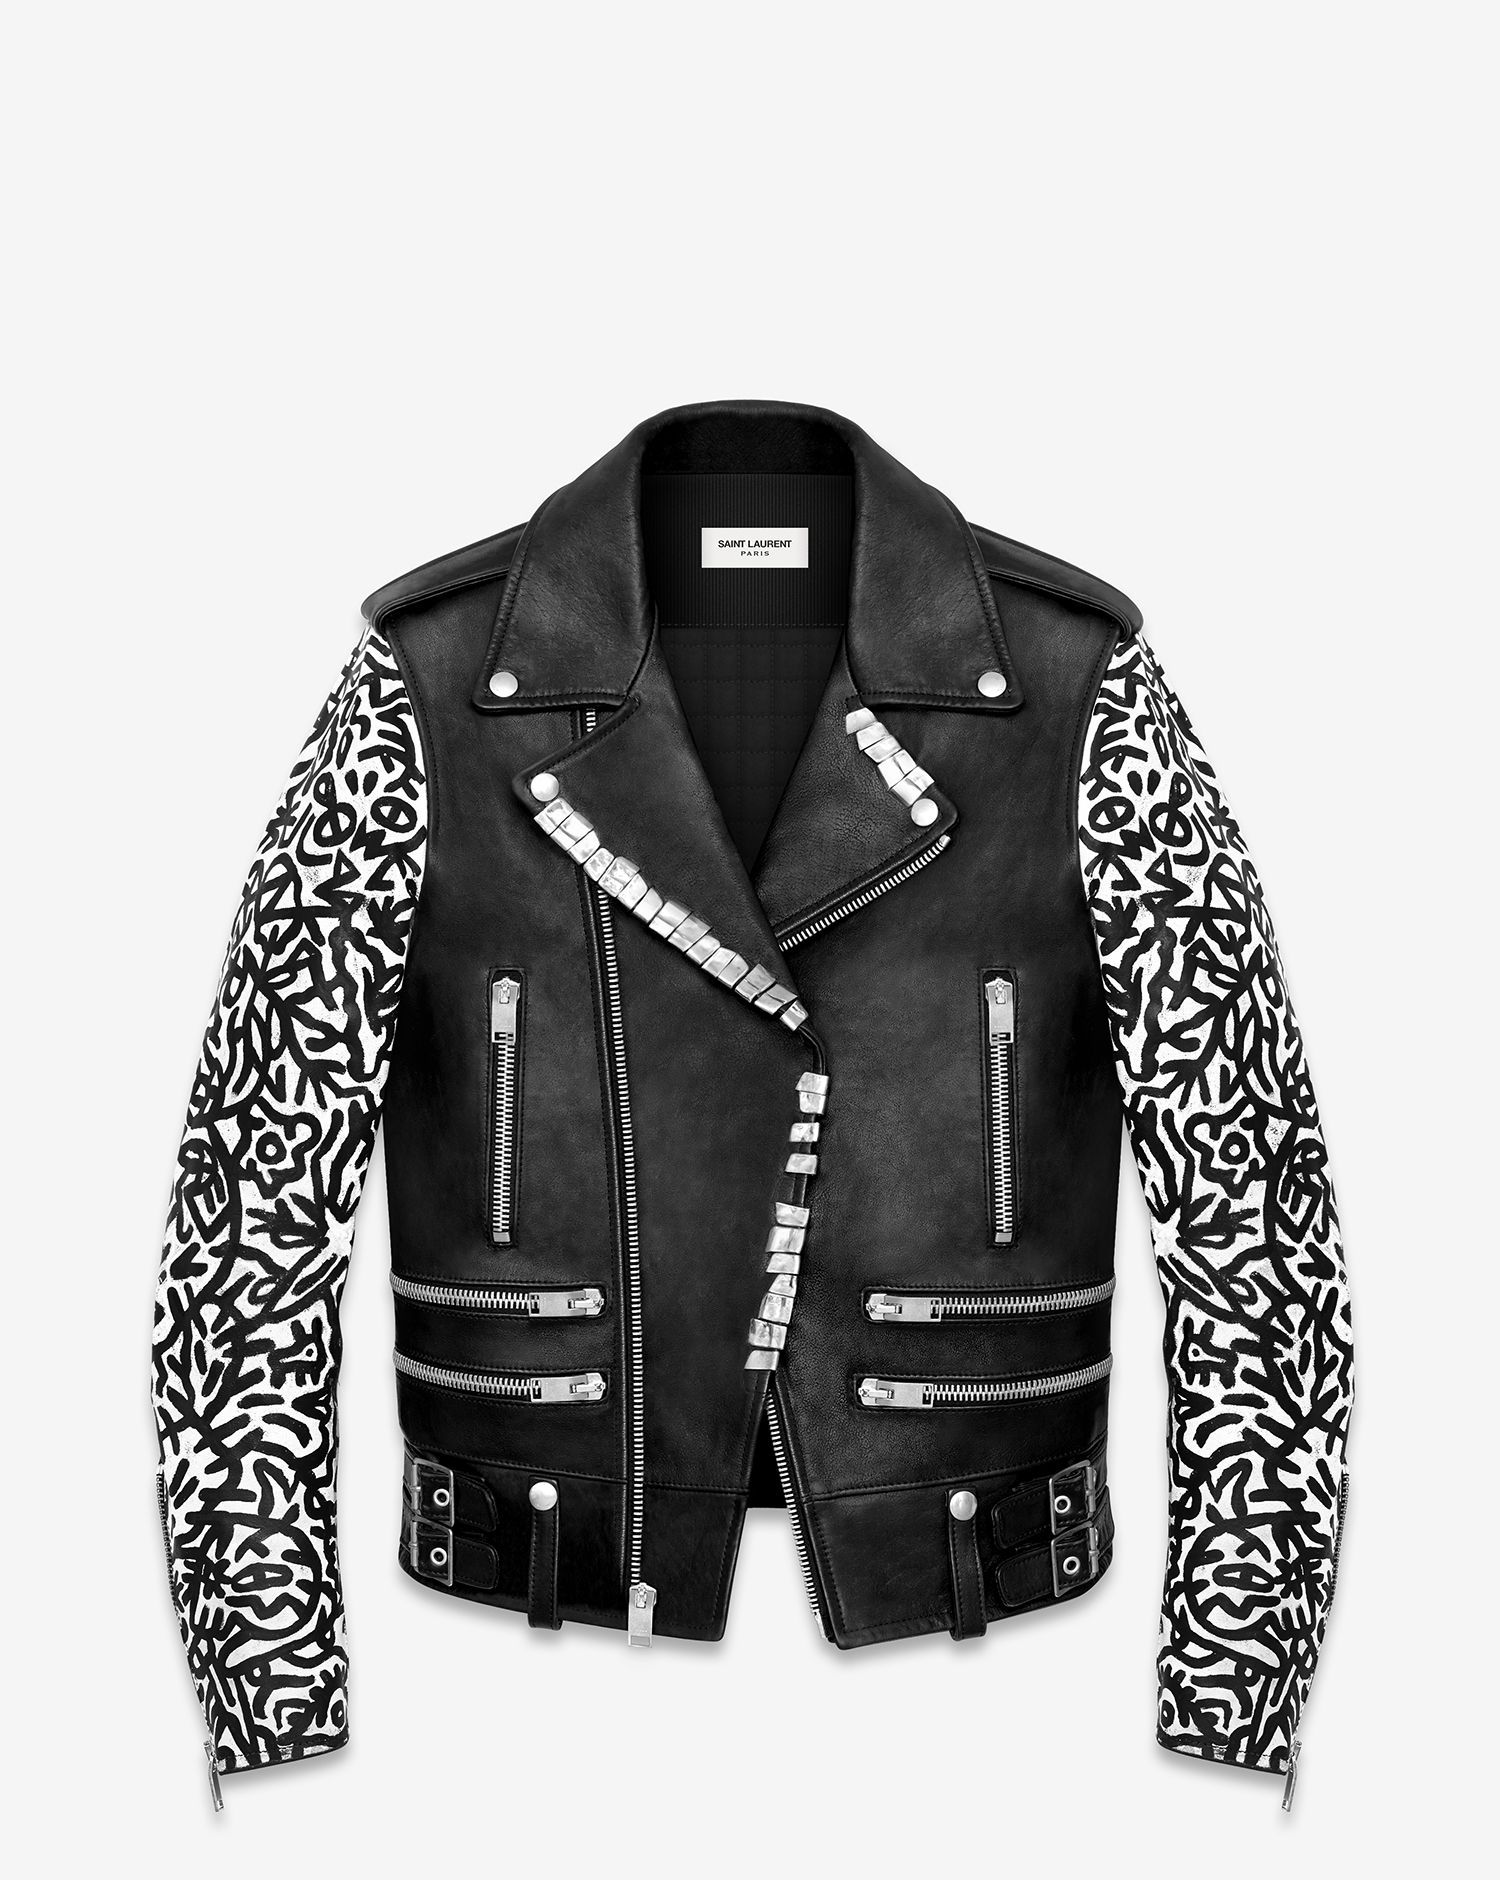 9a391d4ea22 Saint Laurent Signature Sumi Ink Club Motorcycle Jacket In Black Leather